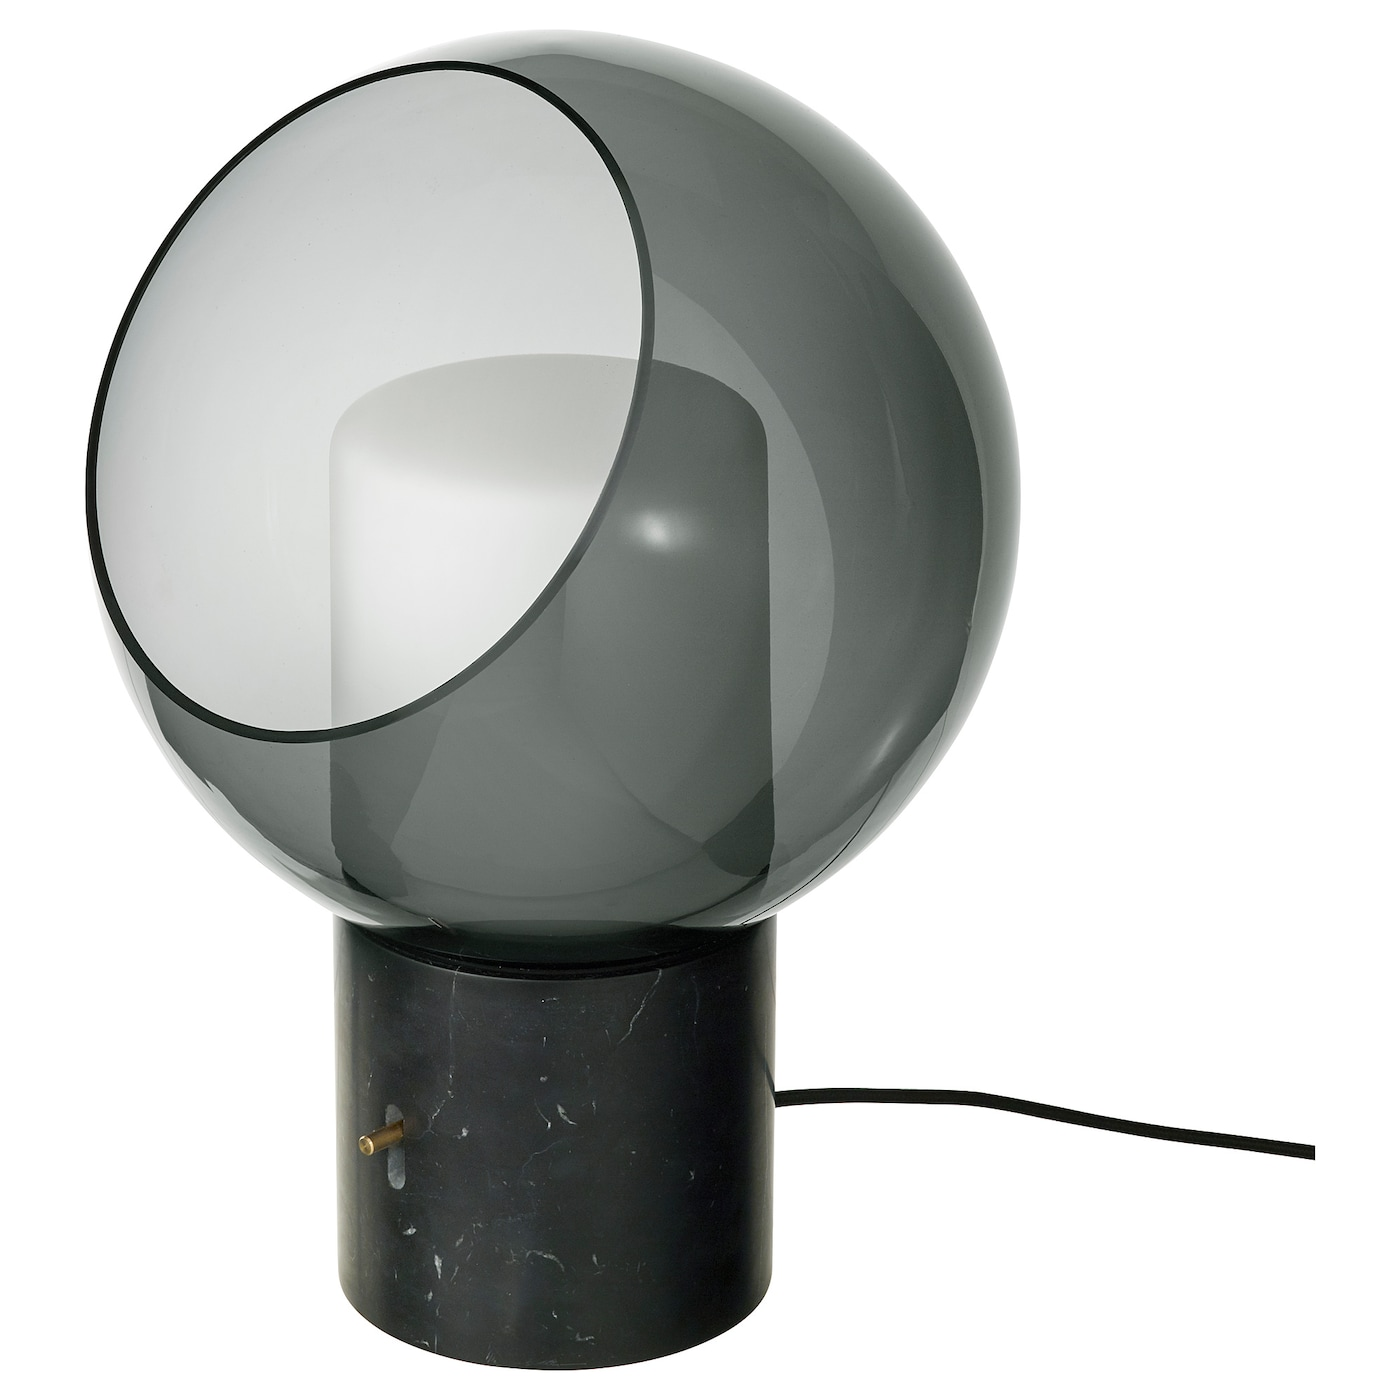 IKEA EVEDAL table lamp If you want to dim the light, press the power switch up or down.